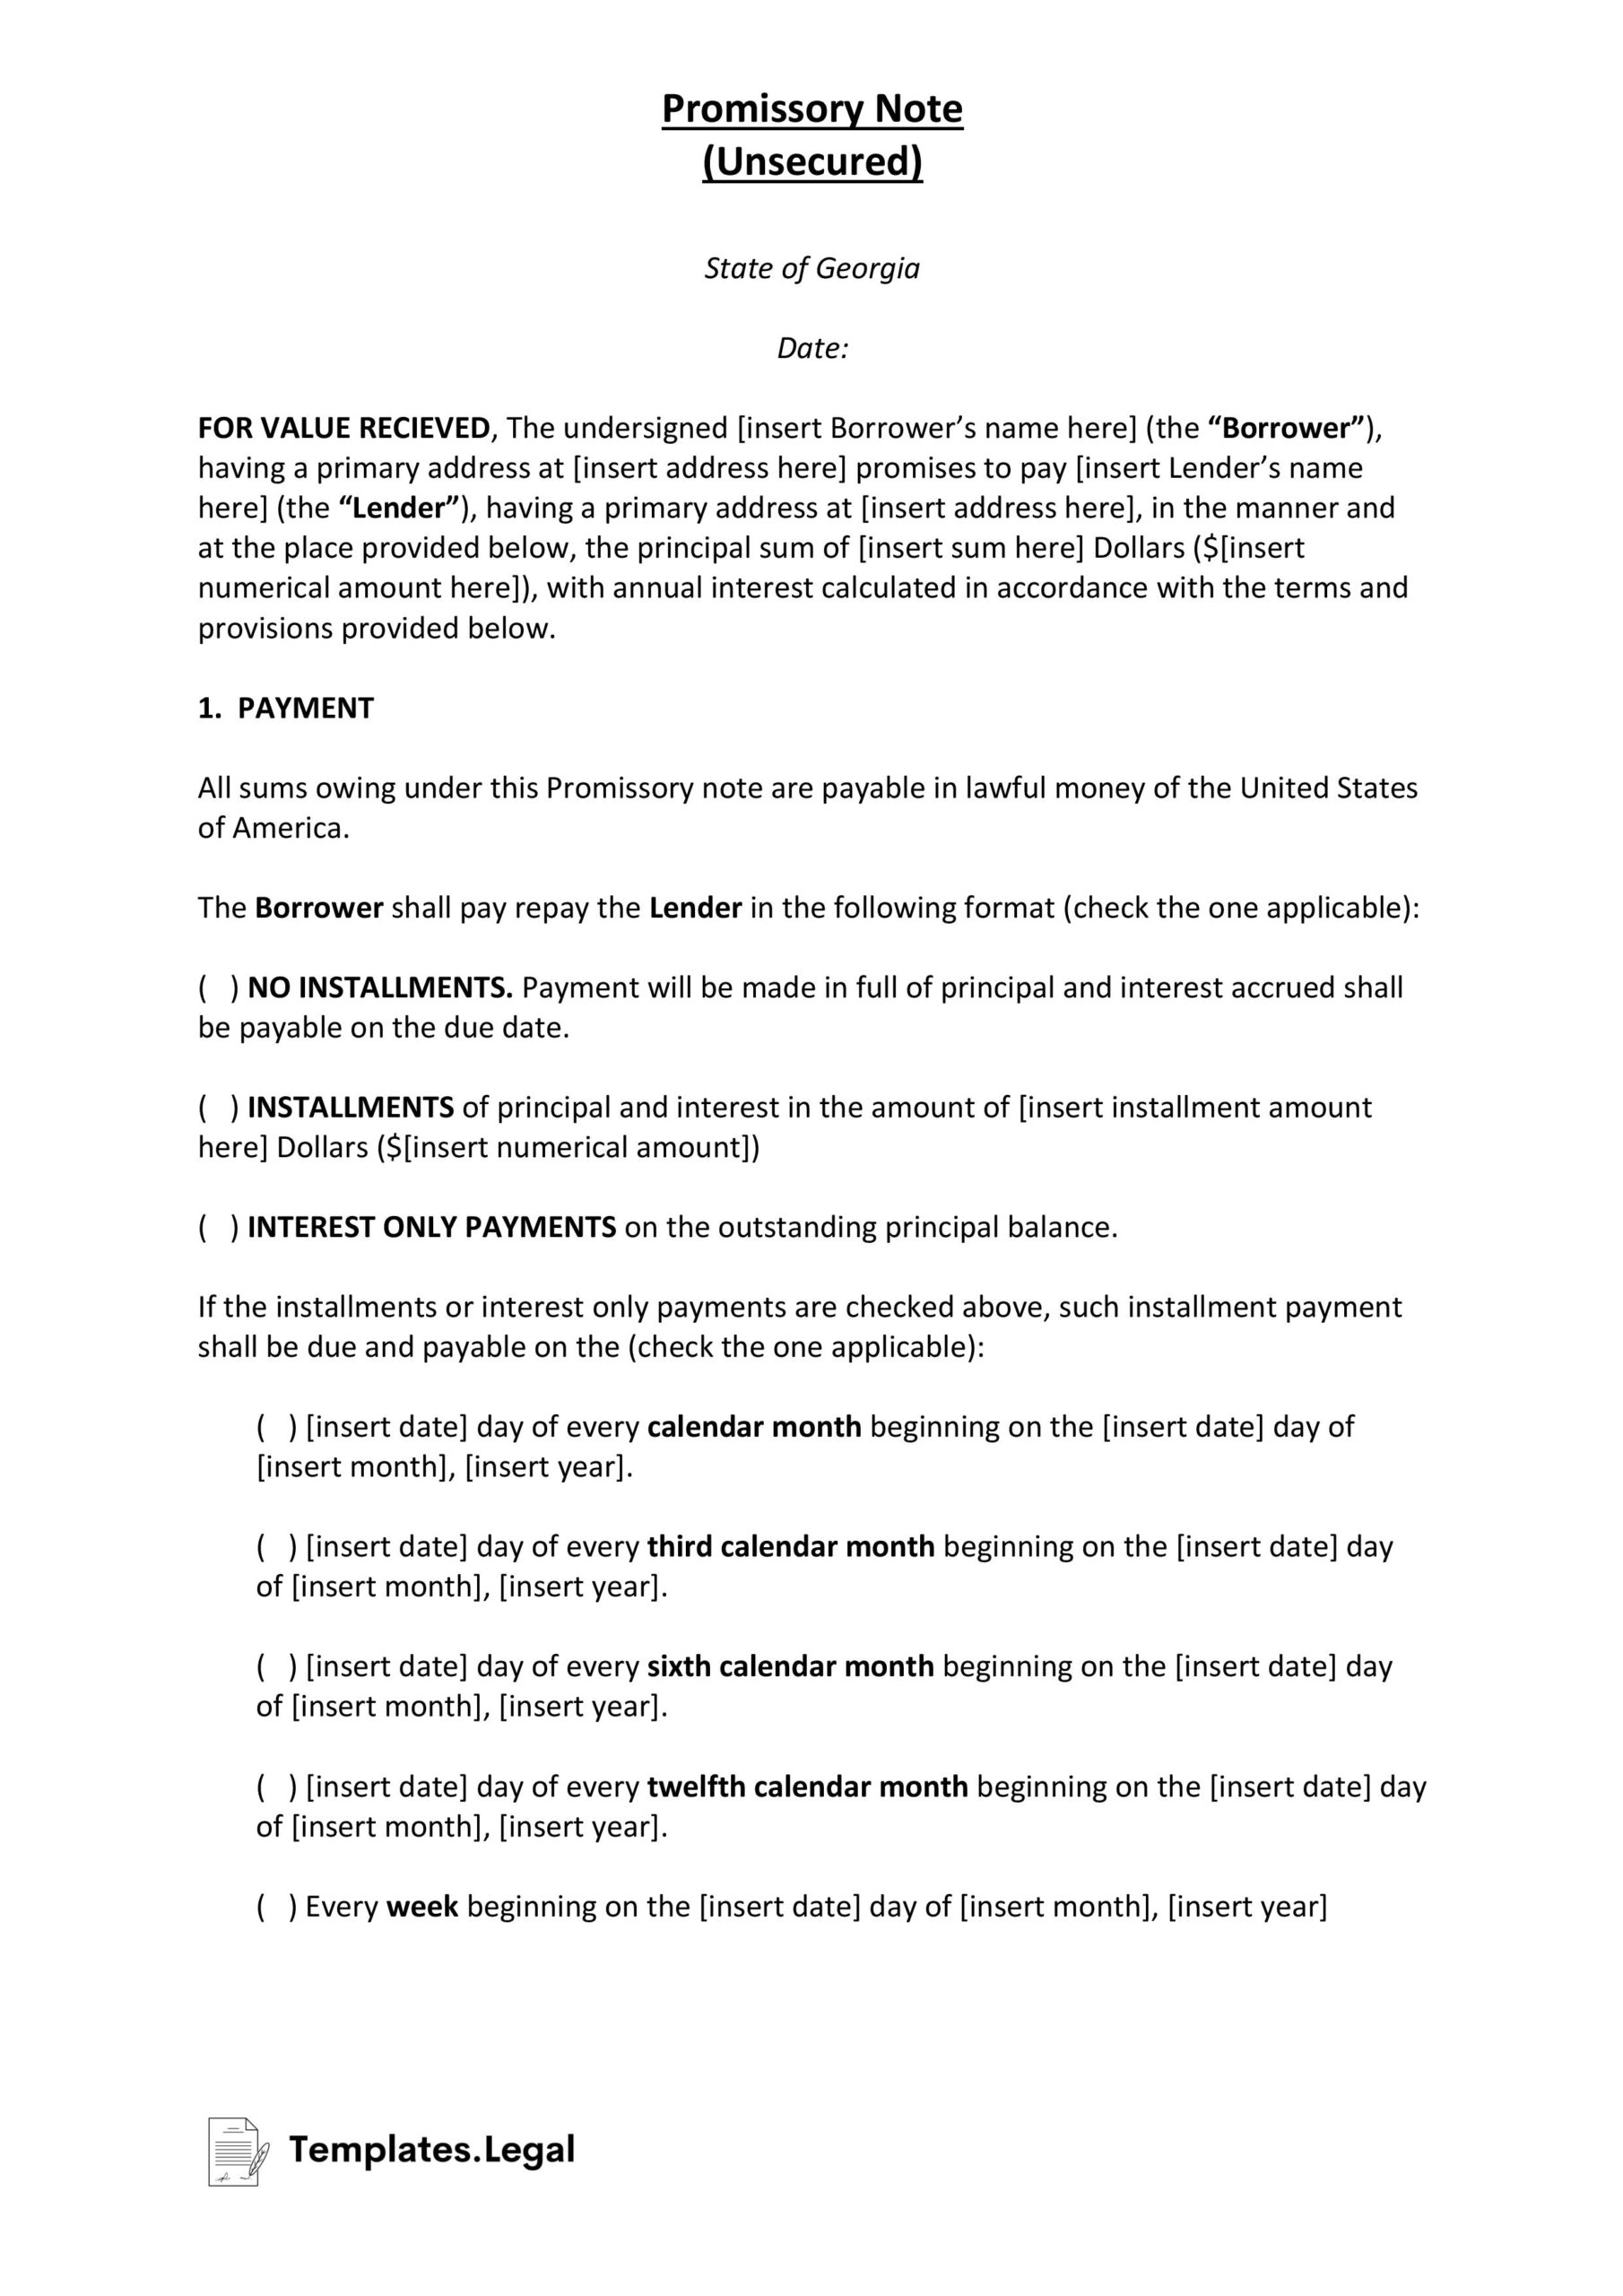 Georgia Unsecured Promissory Note - Templates.Legal